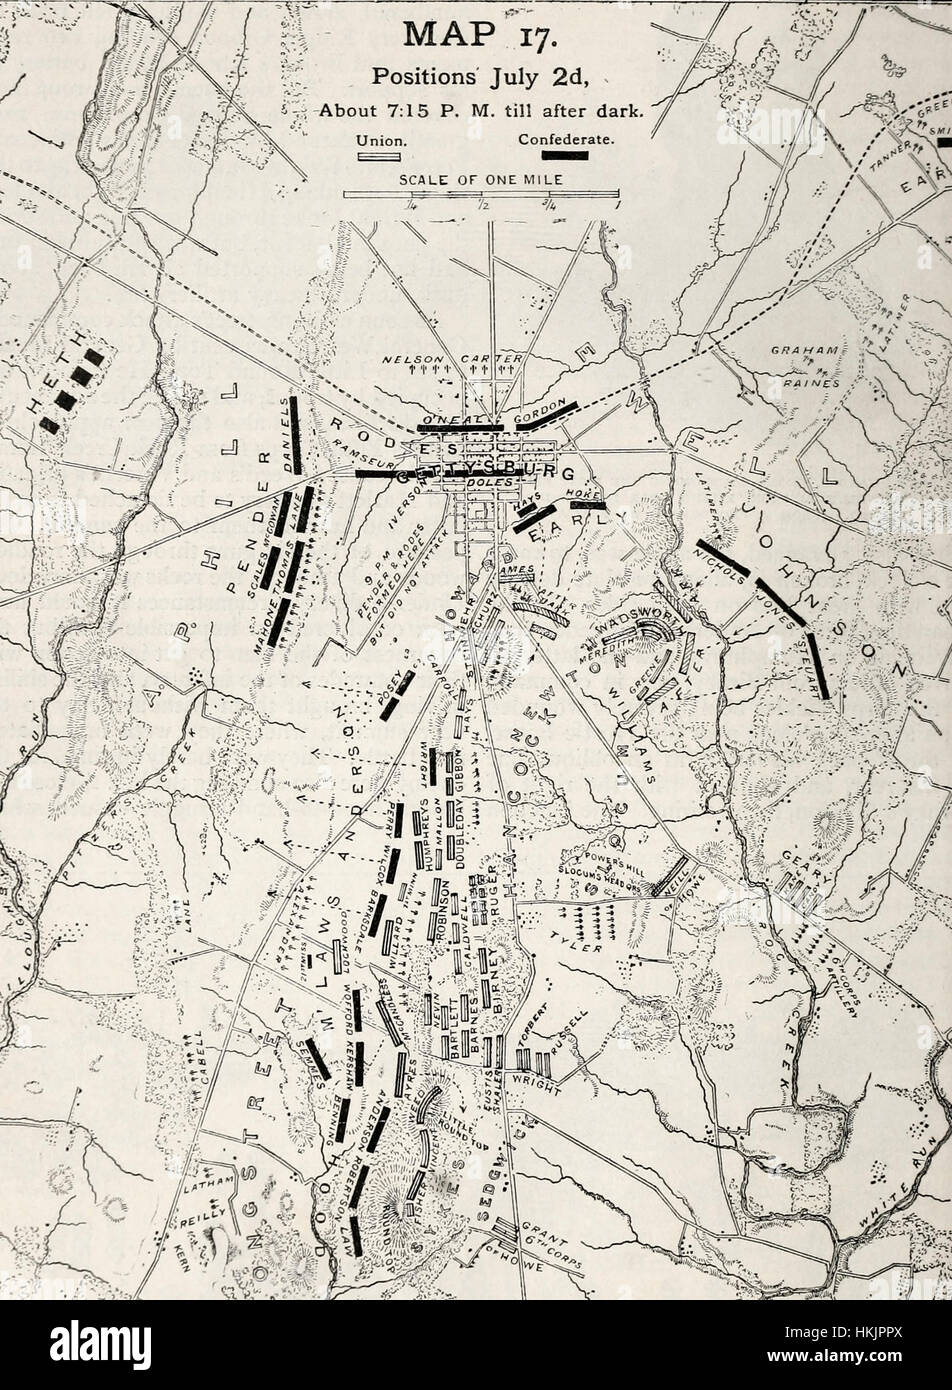 Map Of The Second Day Of Battle Of Gettysburg USA Civil War Stock - Battle of gettysburg us map